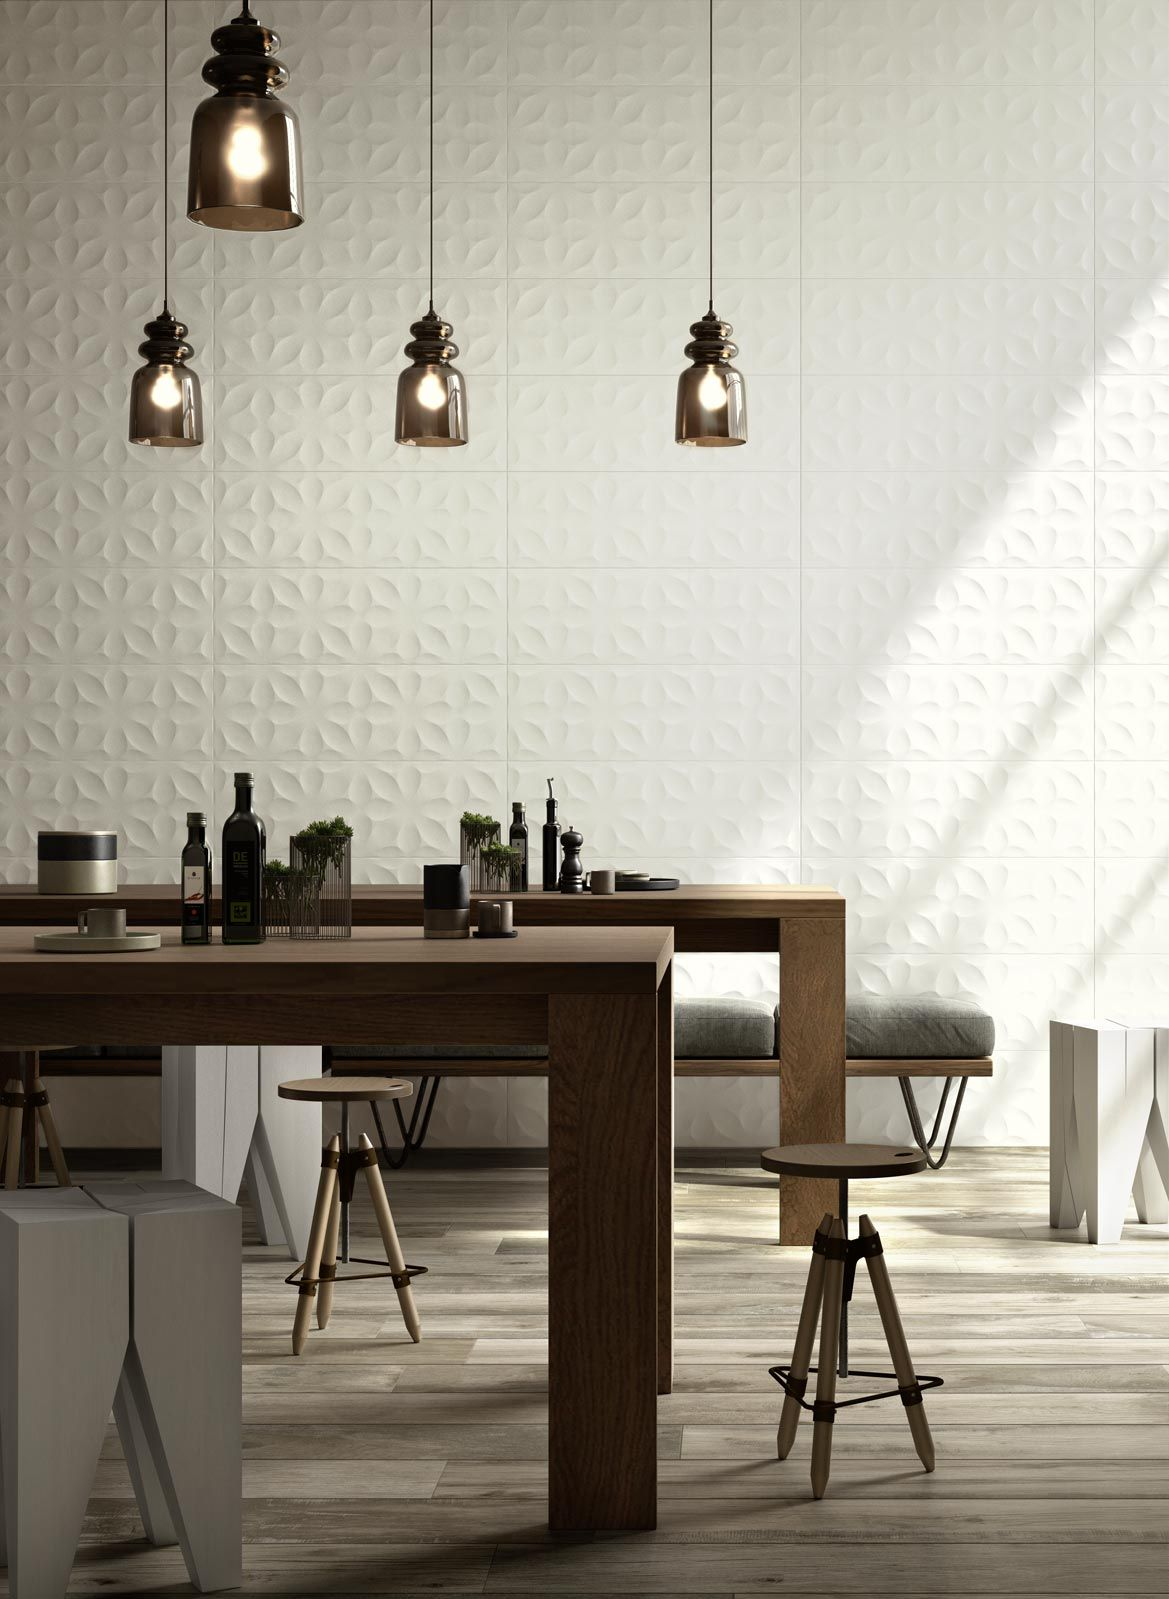 Ragno Freestyle 3D tiles from Tubs &Tiles http://bit.ly/2fRzSHN ...